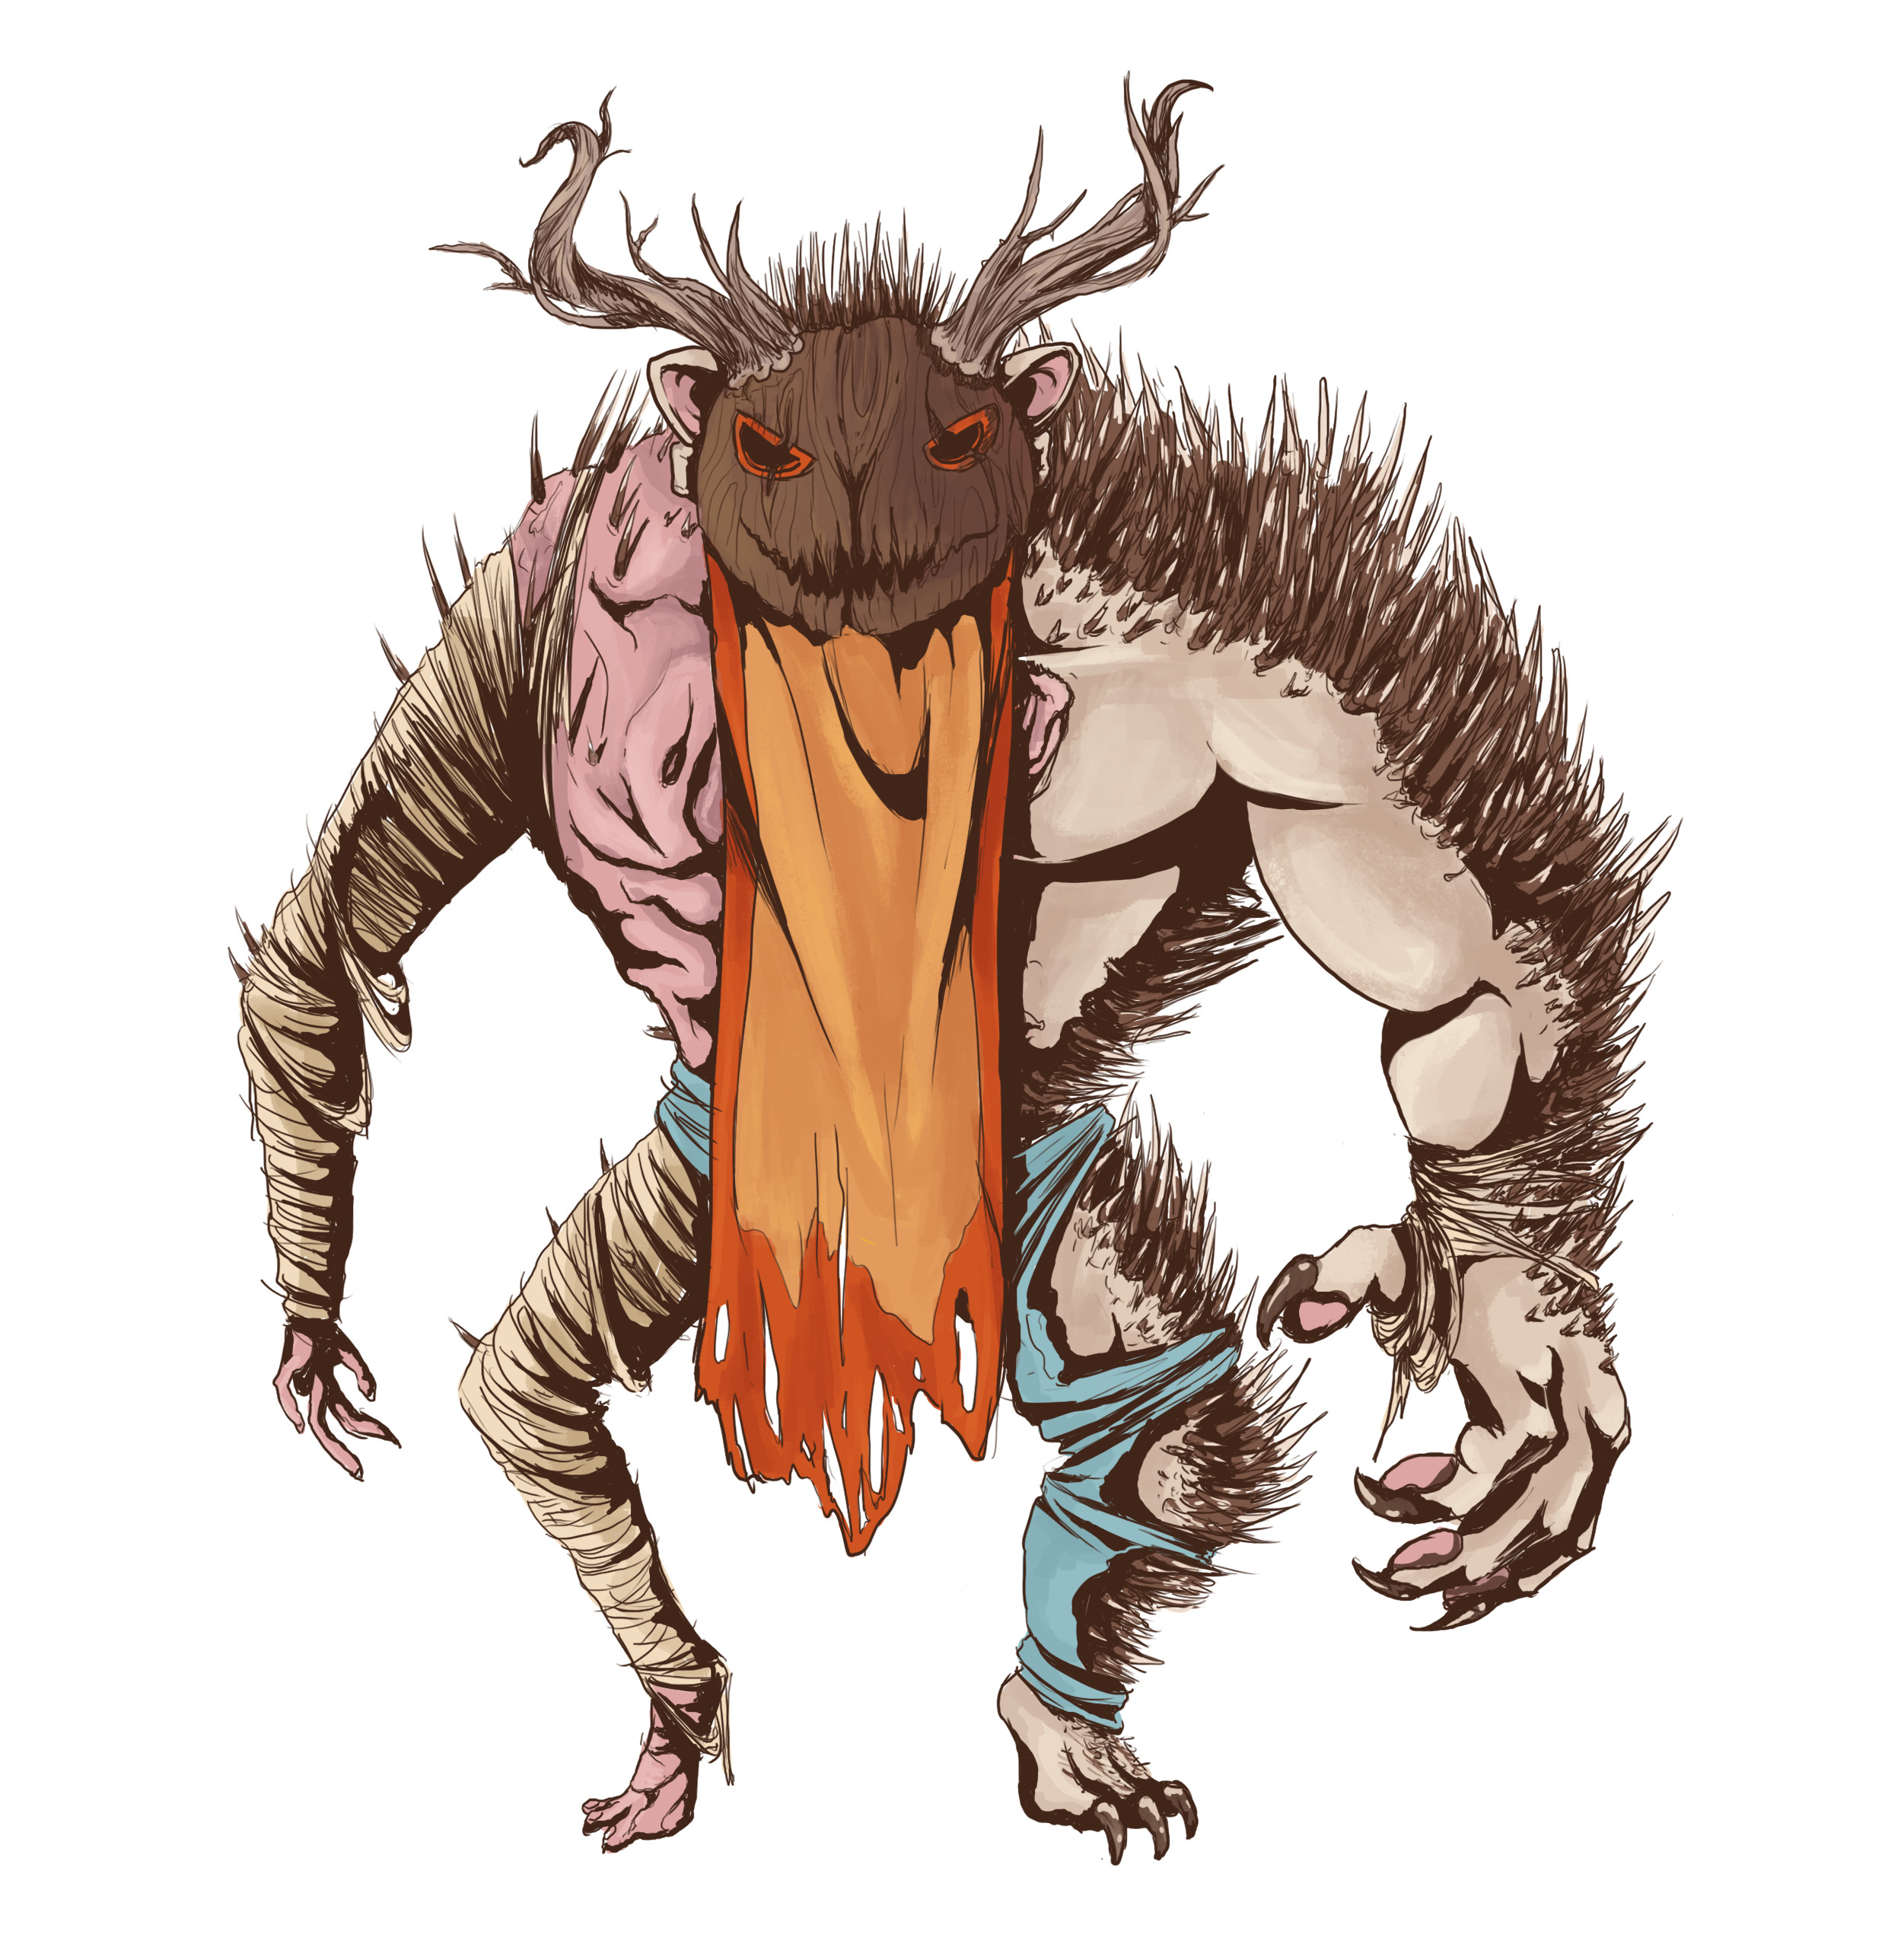 Design for the Beast, the character who's been in the woods so long with his own torments he's becoming more beast than man.